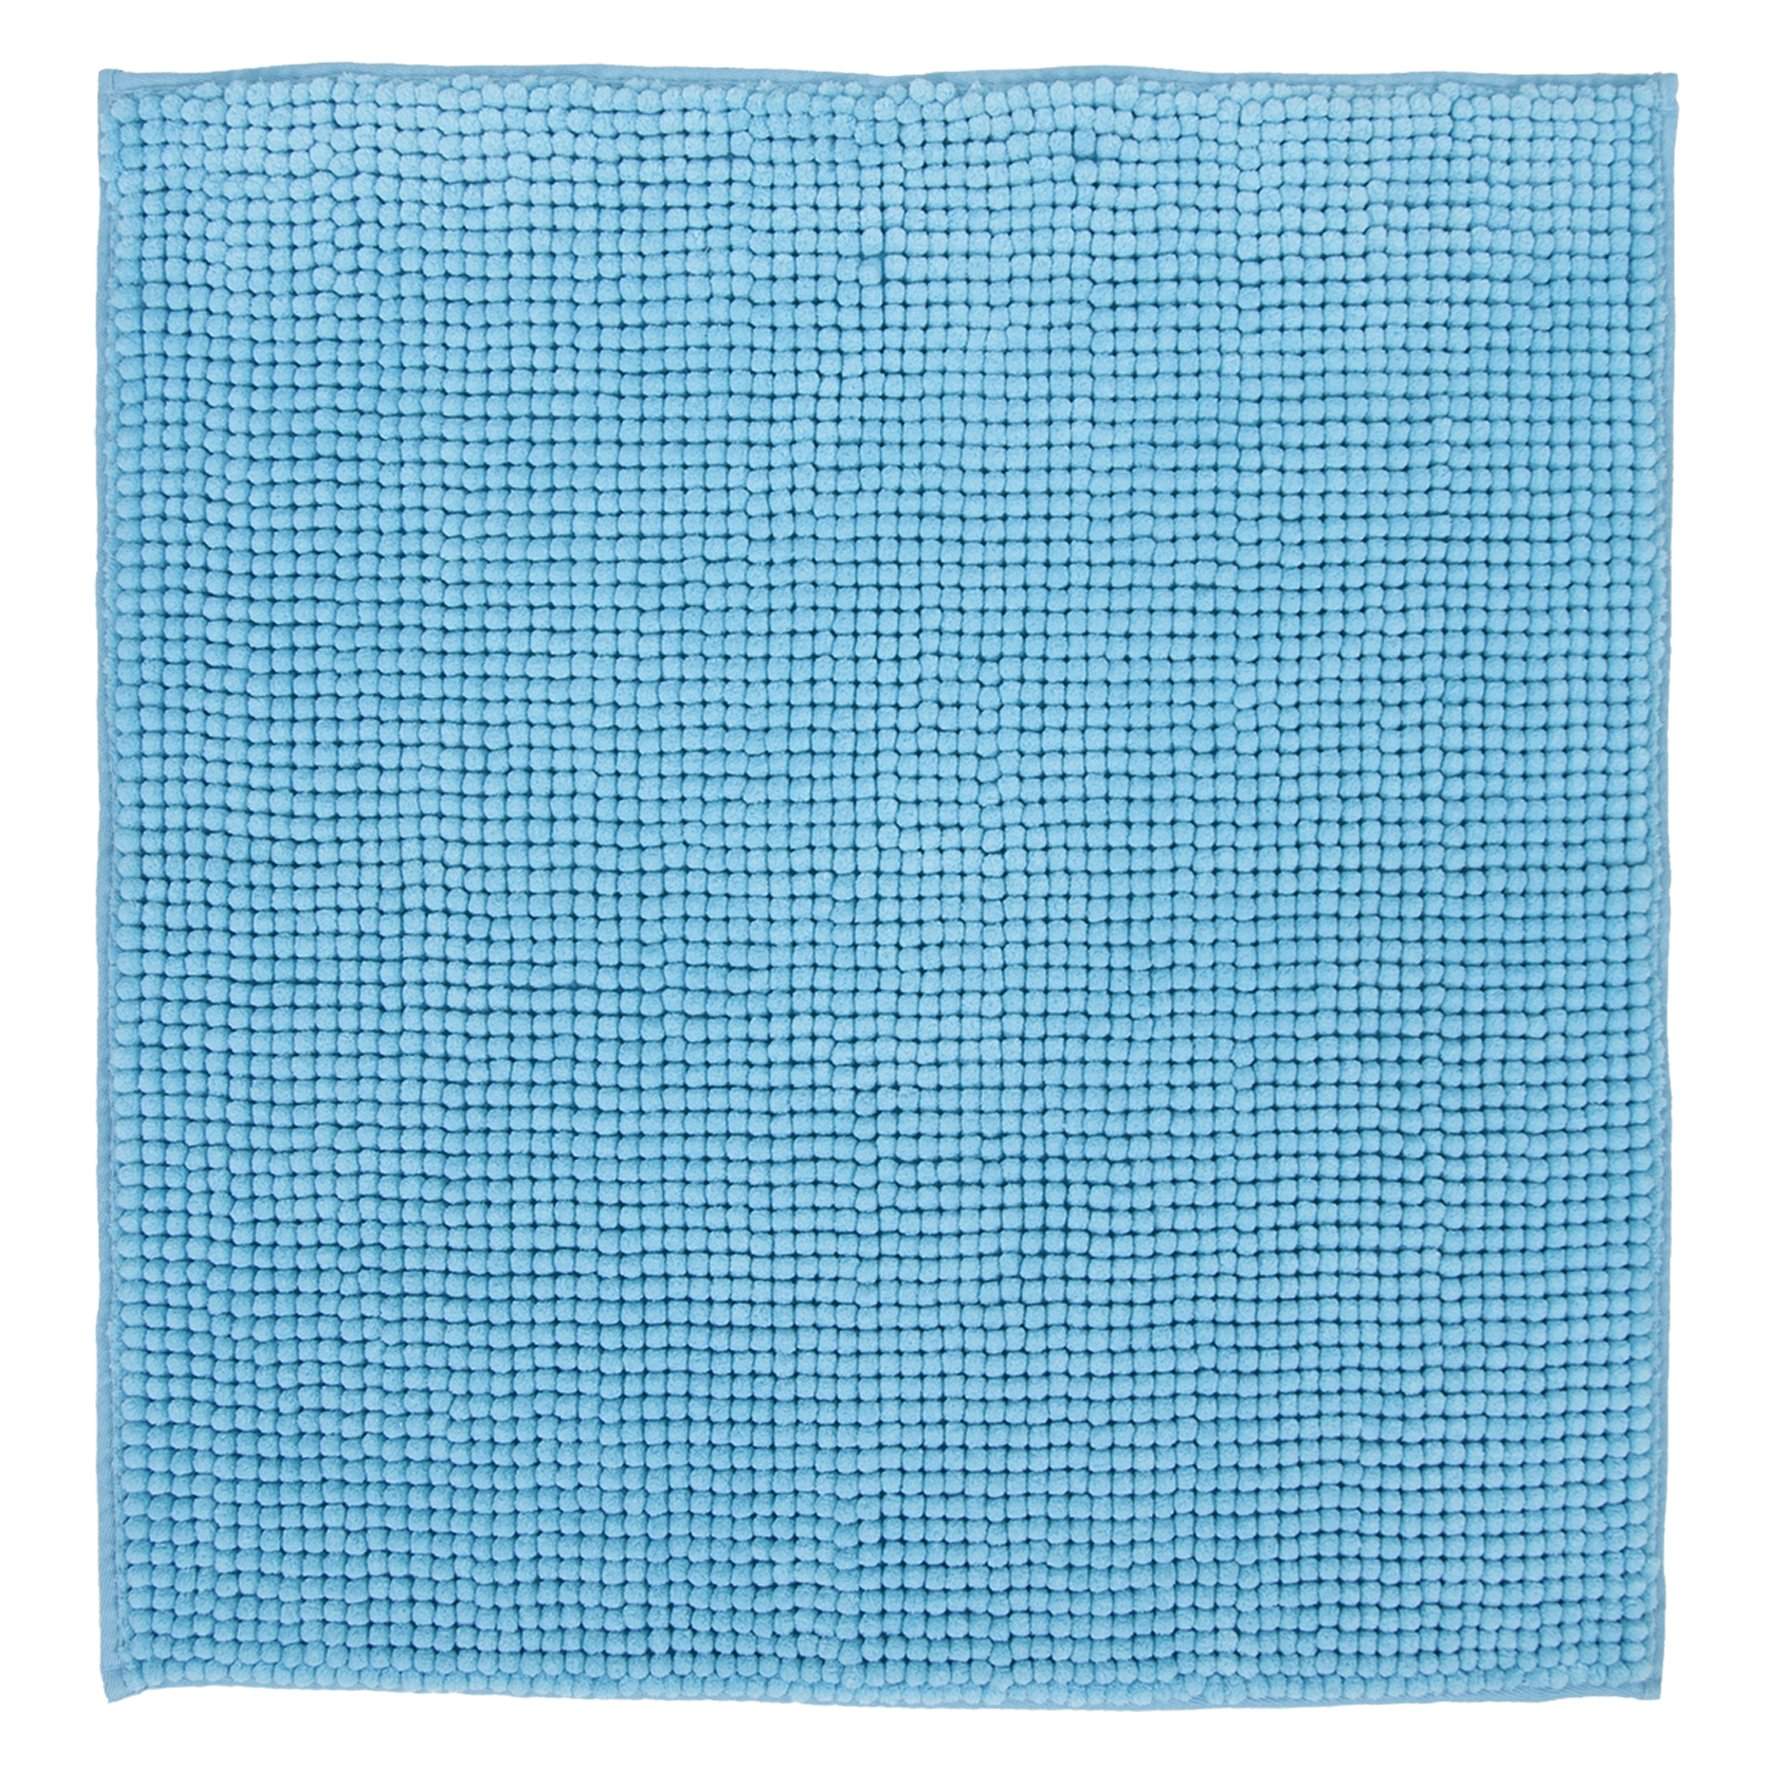 DIFFERNZ 31.102.95 Candore Bath Rug, Azure by Differnz